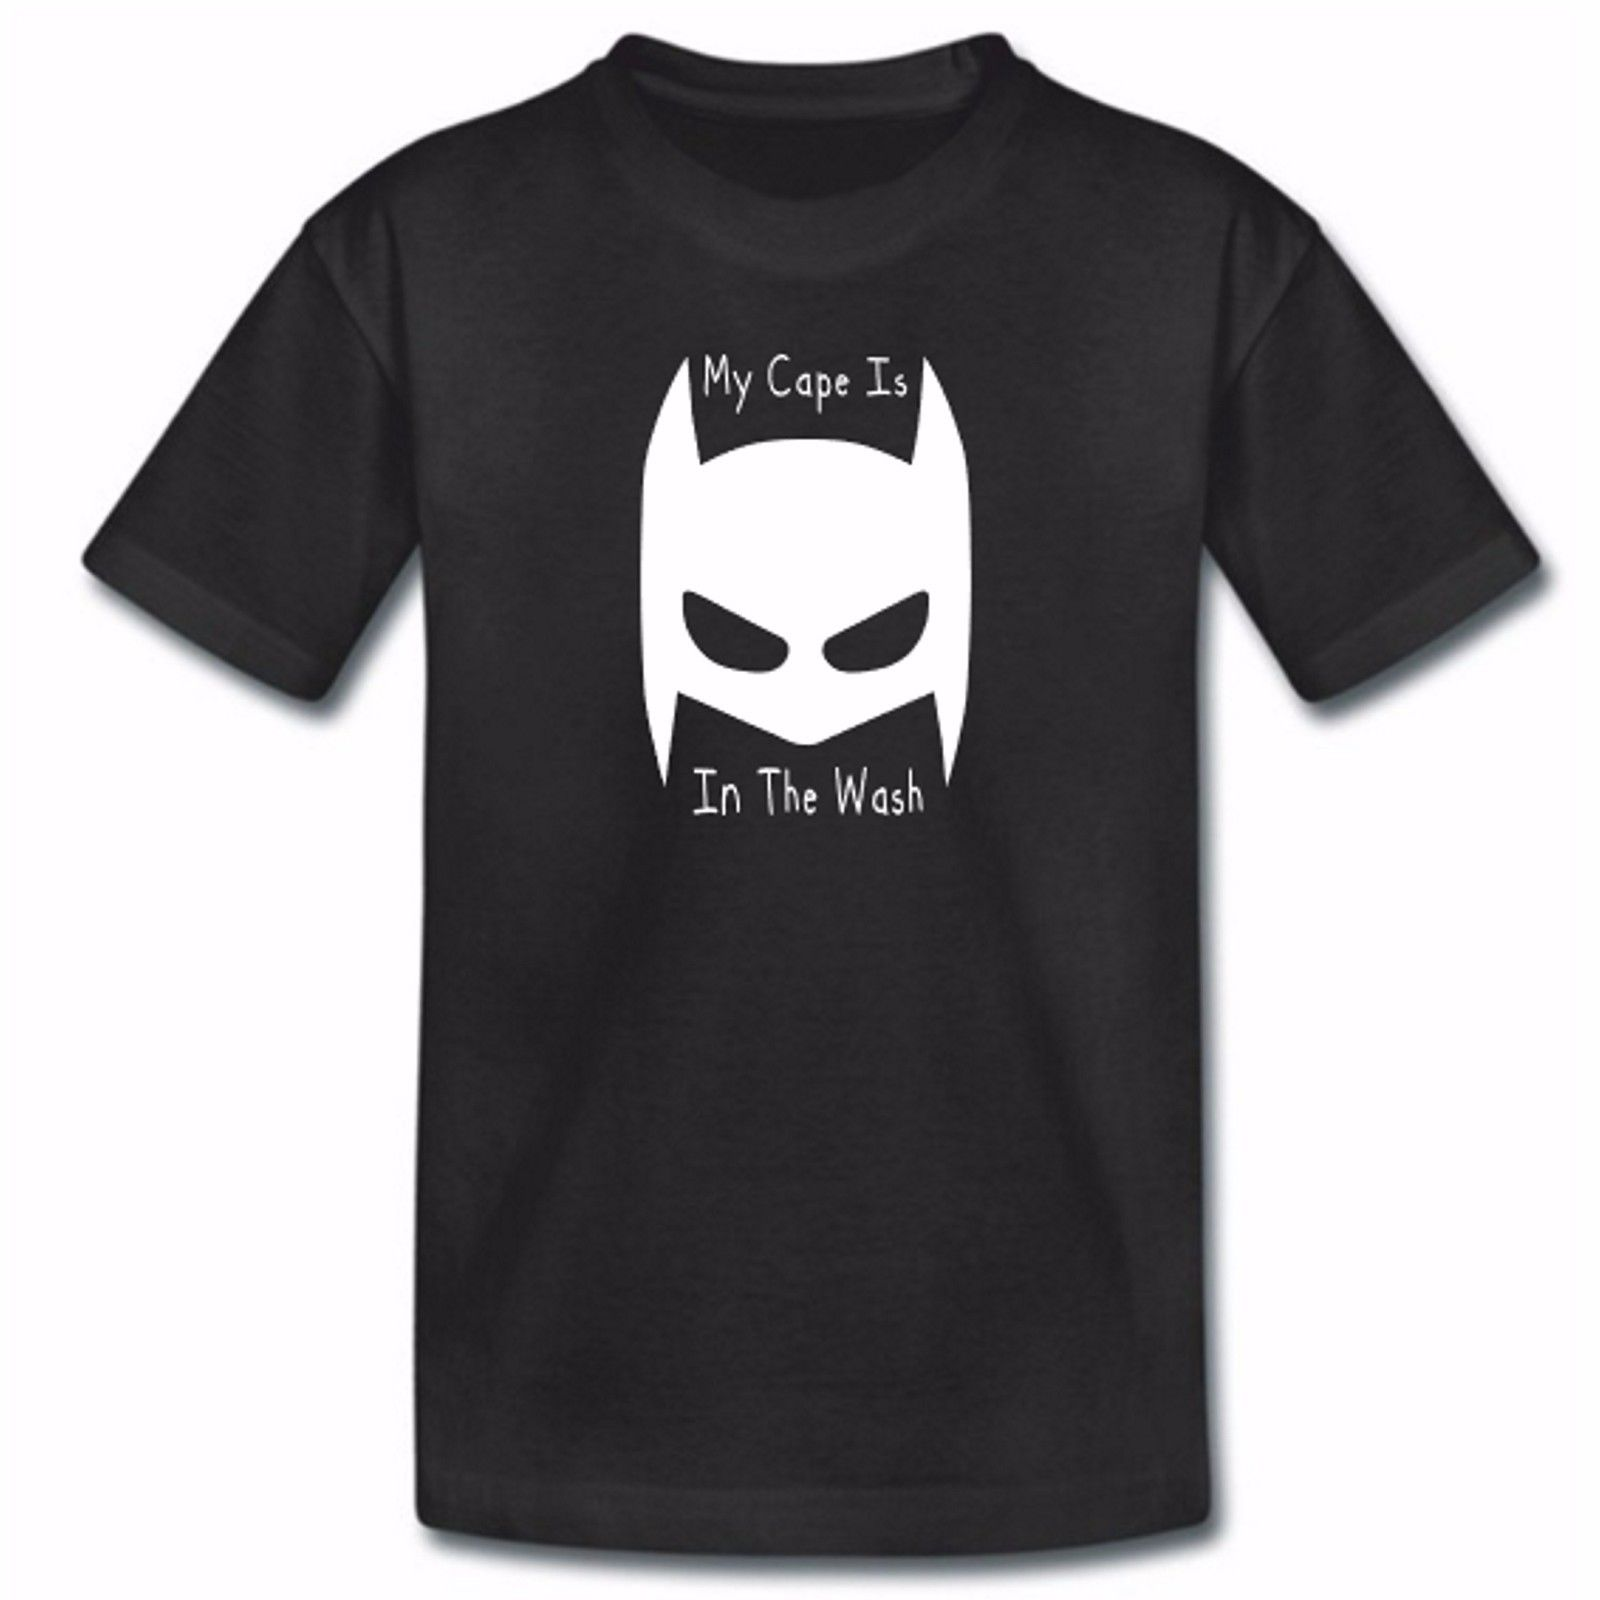 Kids My Cape Is In The Wash Batman Black TShirt - Ideal Gift - Childrens Hero